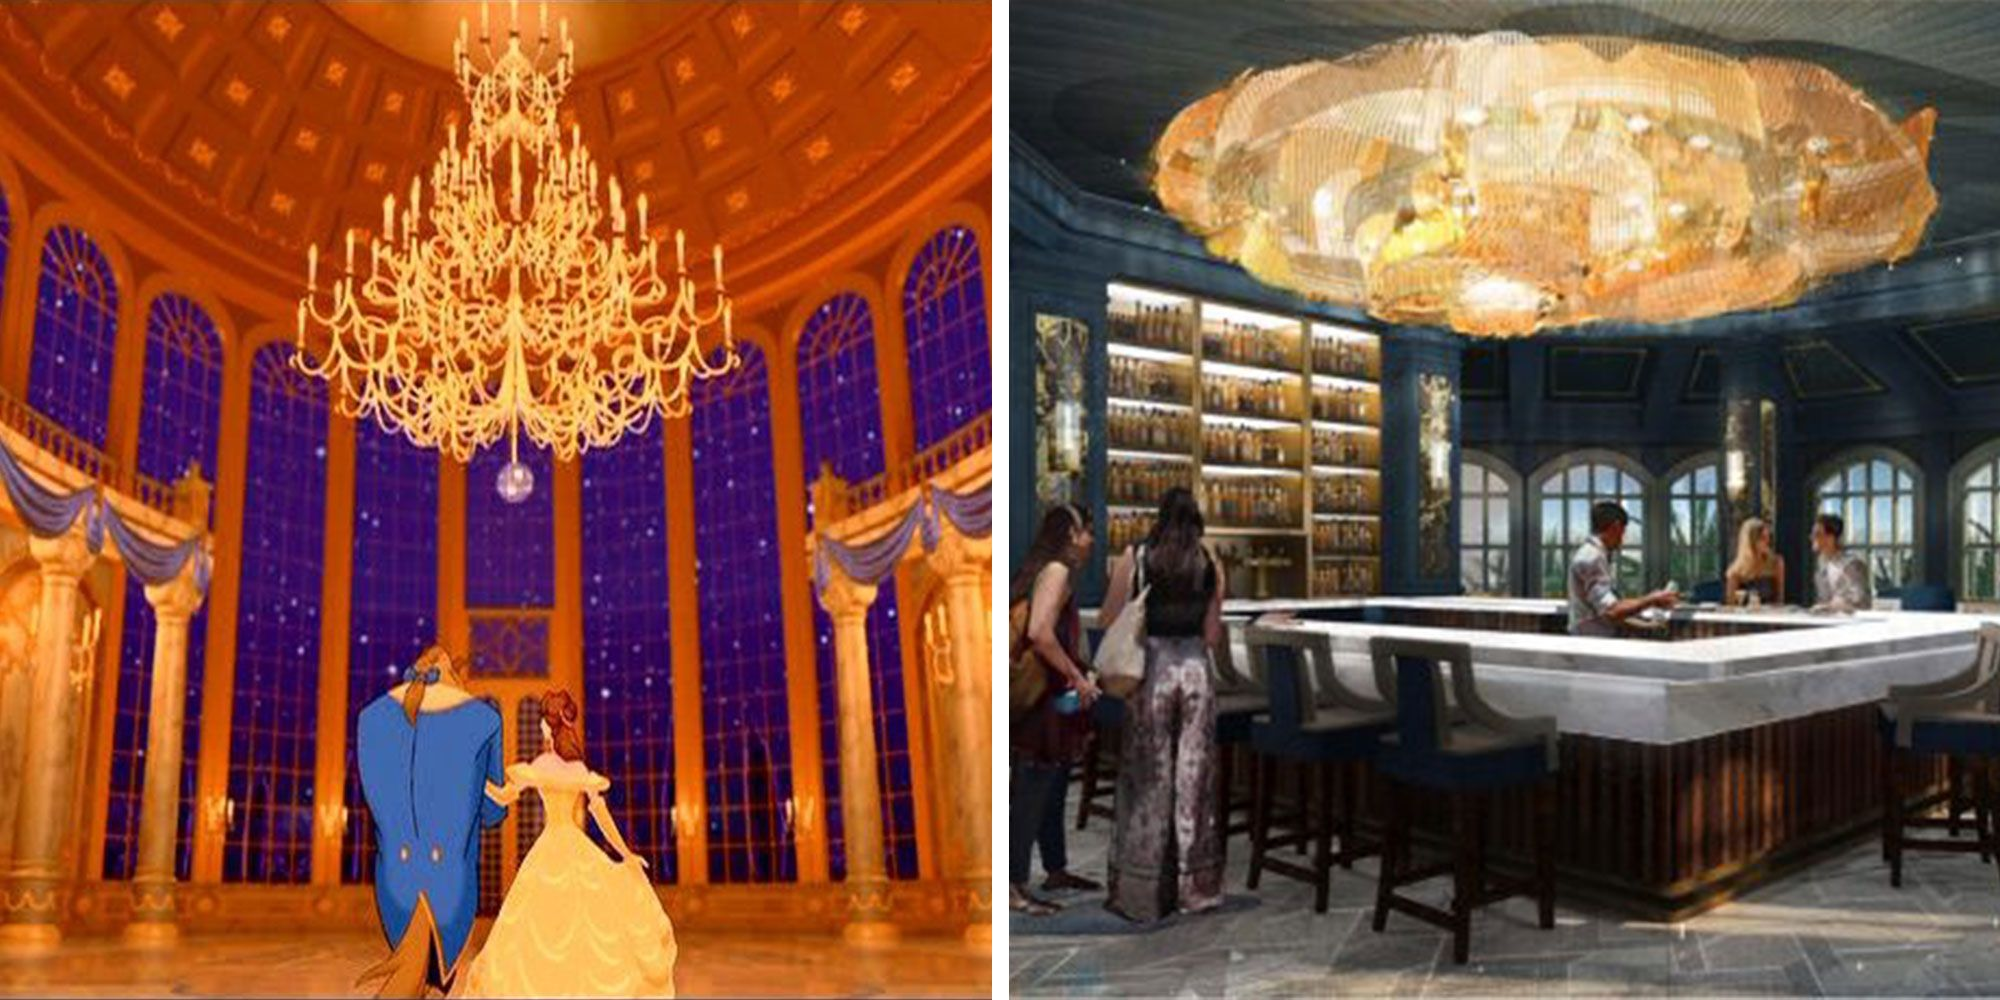 A 'Beauty and the Beast' Bar Is Coming to Disney and You Don't Even Need a Park Ticket to Visit